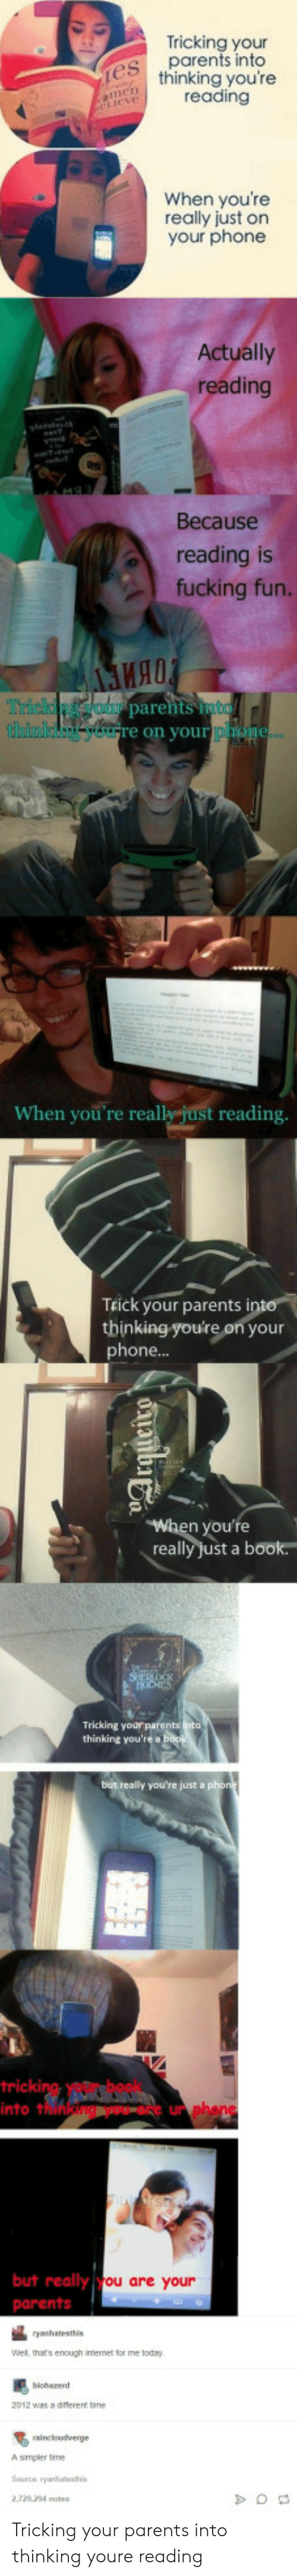 Fucking, Parents, and Phone: Tricking your  parents into  thinking you're  reading  When youre  really just on  your phone  Actually  reading  Because  reading is  fucking fun.  ия!  parehts to  rich  on your  When you're really just reading  TEick your parents i  thinking-you're on your  phone...  you're  really Just a book  thinking you're a  tricki  into t  un  but really  ou are your  Well, thats enough irmernet for me today  2 was a diflerent time  Asimpler time  2,729 24 otes Tricking your parents into thinking youre reading